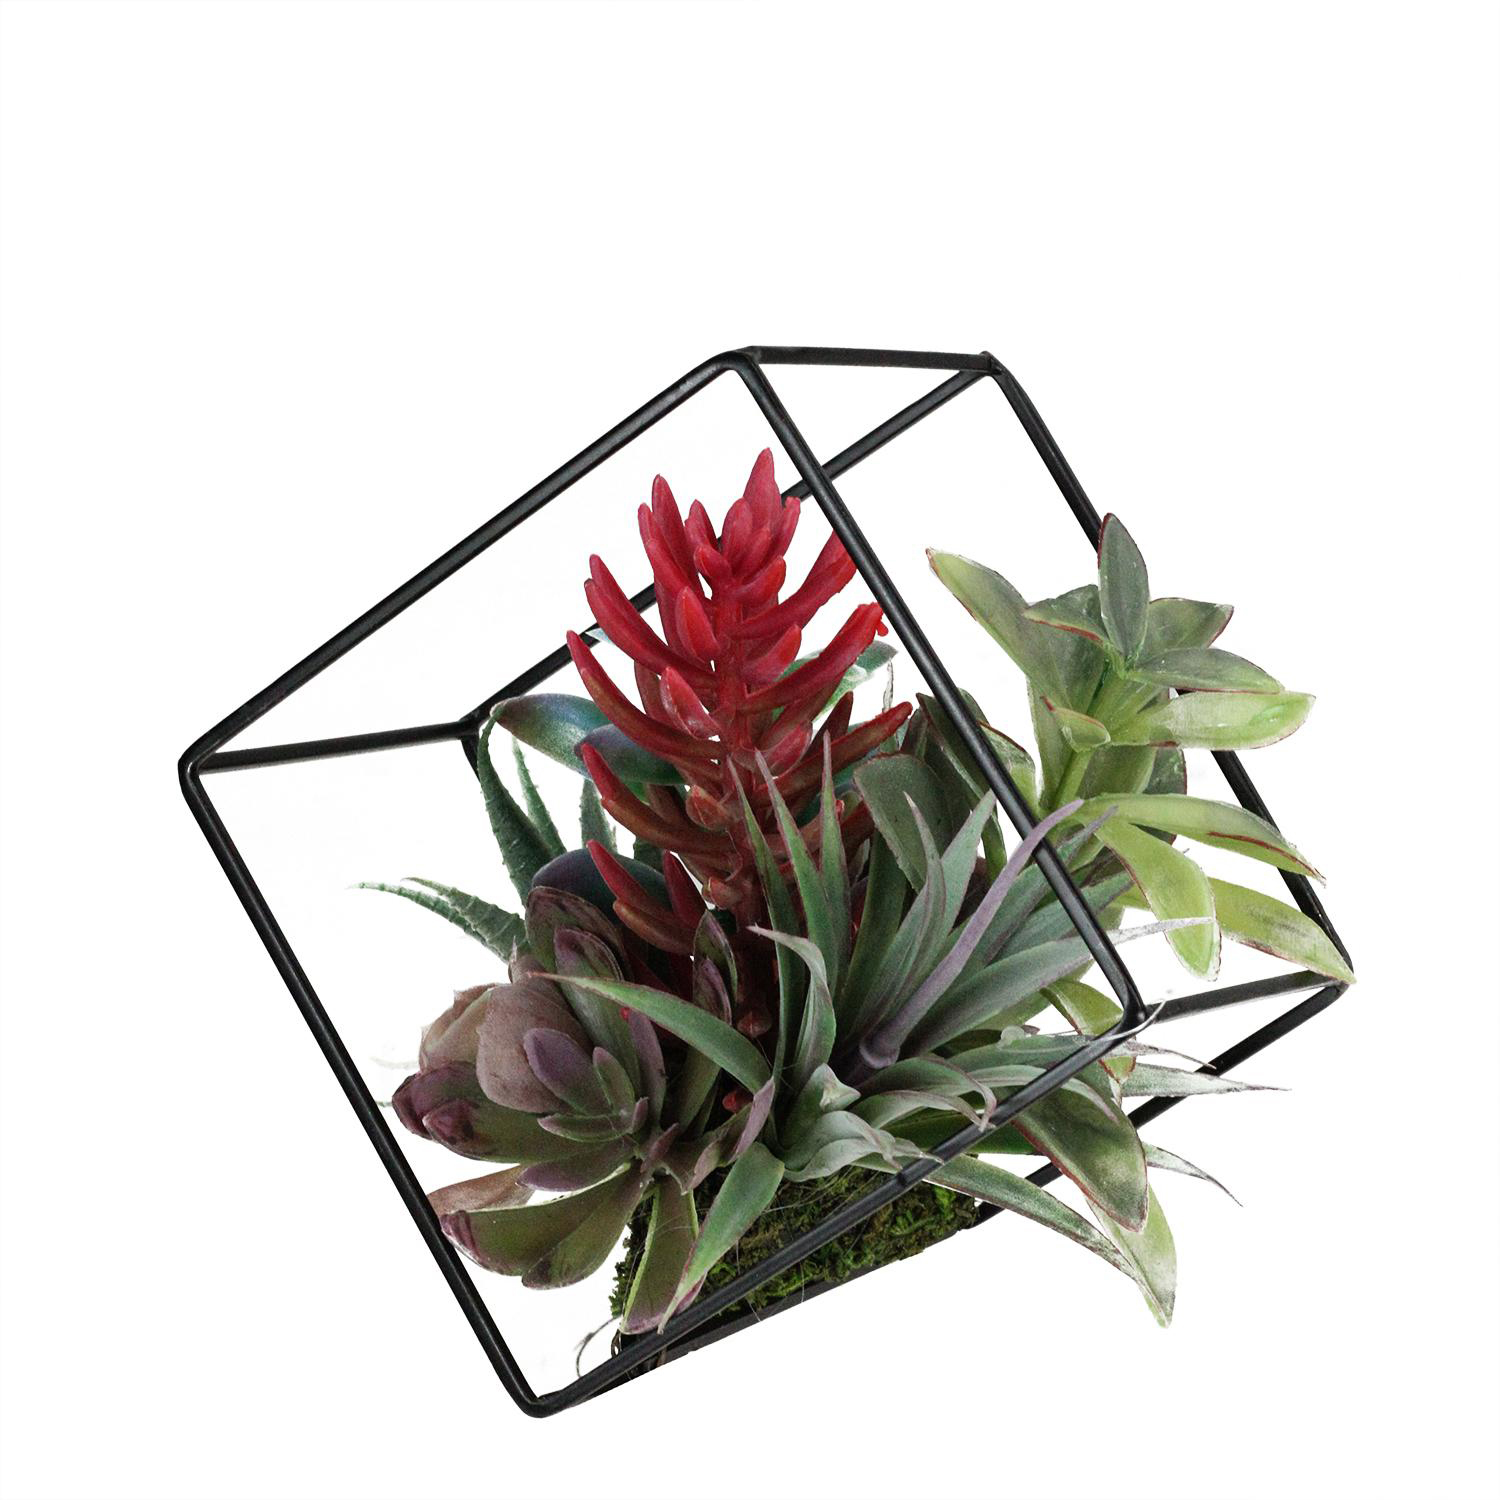 Artificial Succulents Arrangement in Decorative Offset Metal Wire Frame